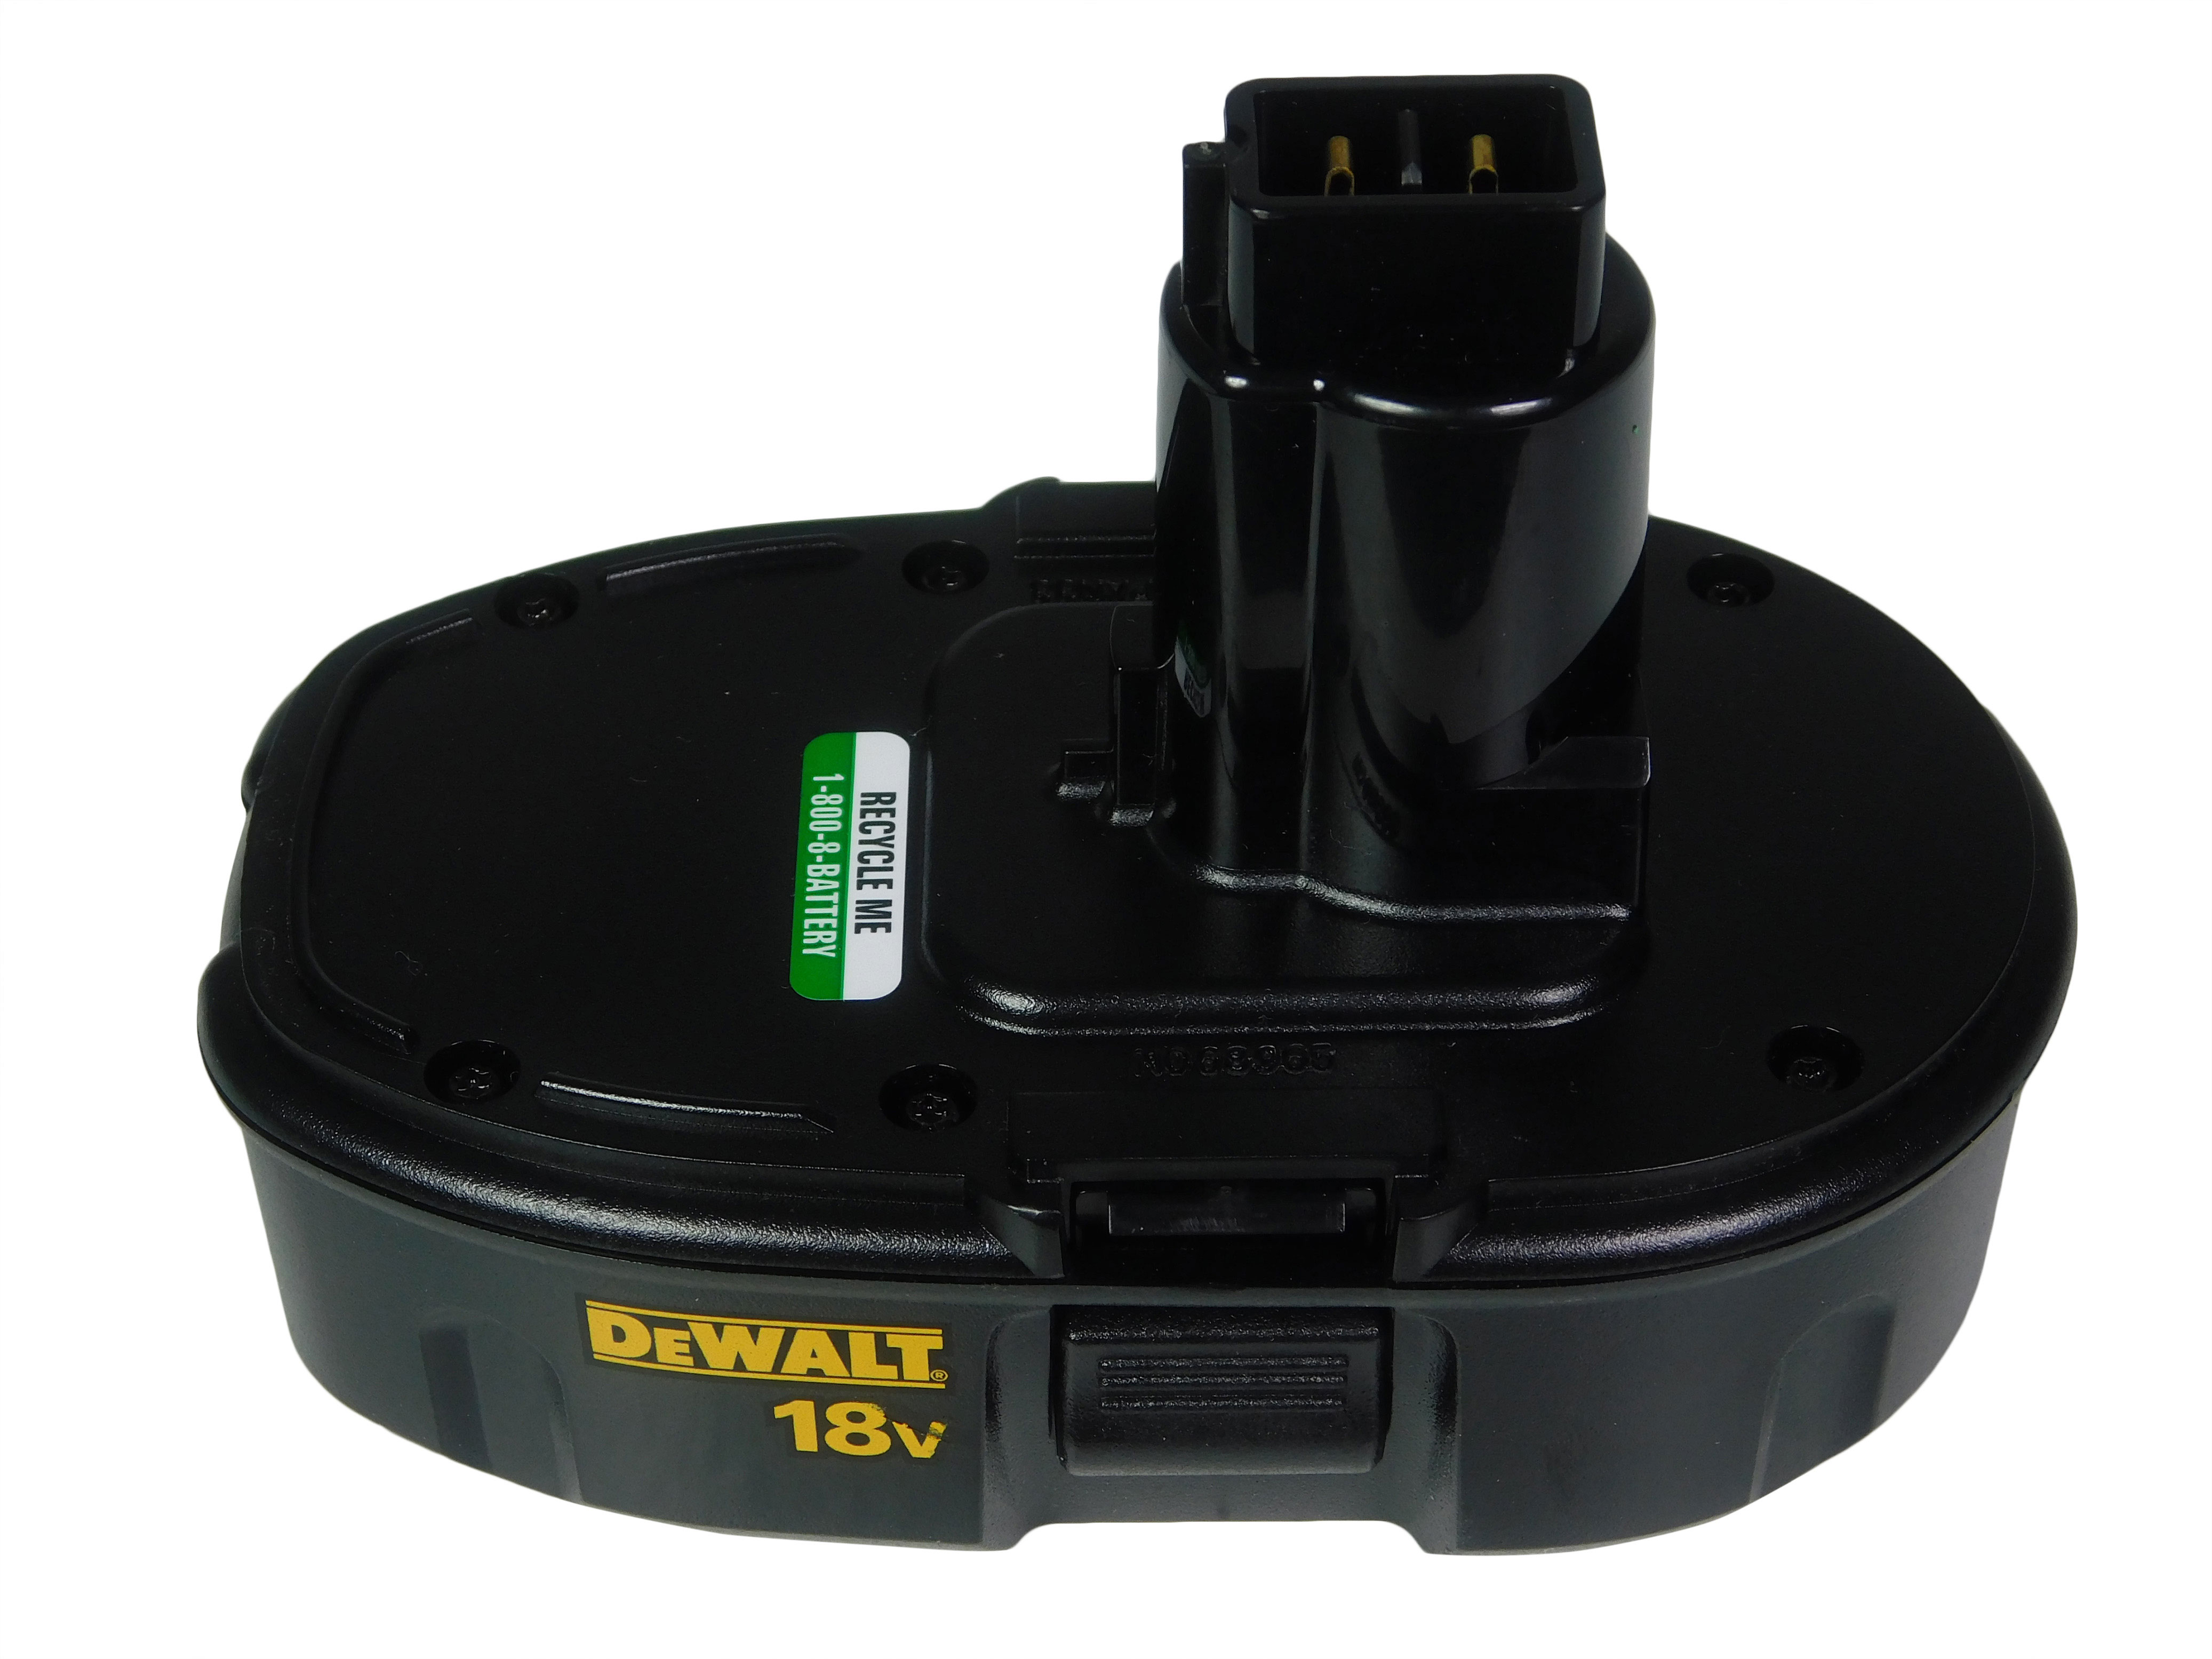 Dewalt-DC9098-18V-Ni-Cad-Battery-Single-Pack-image-12